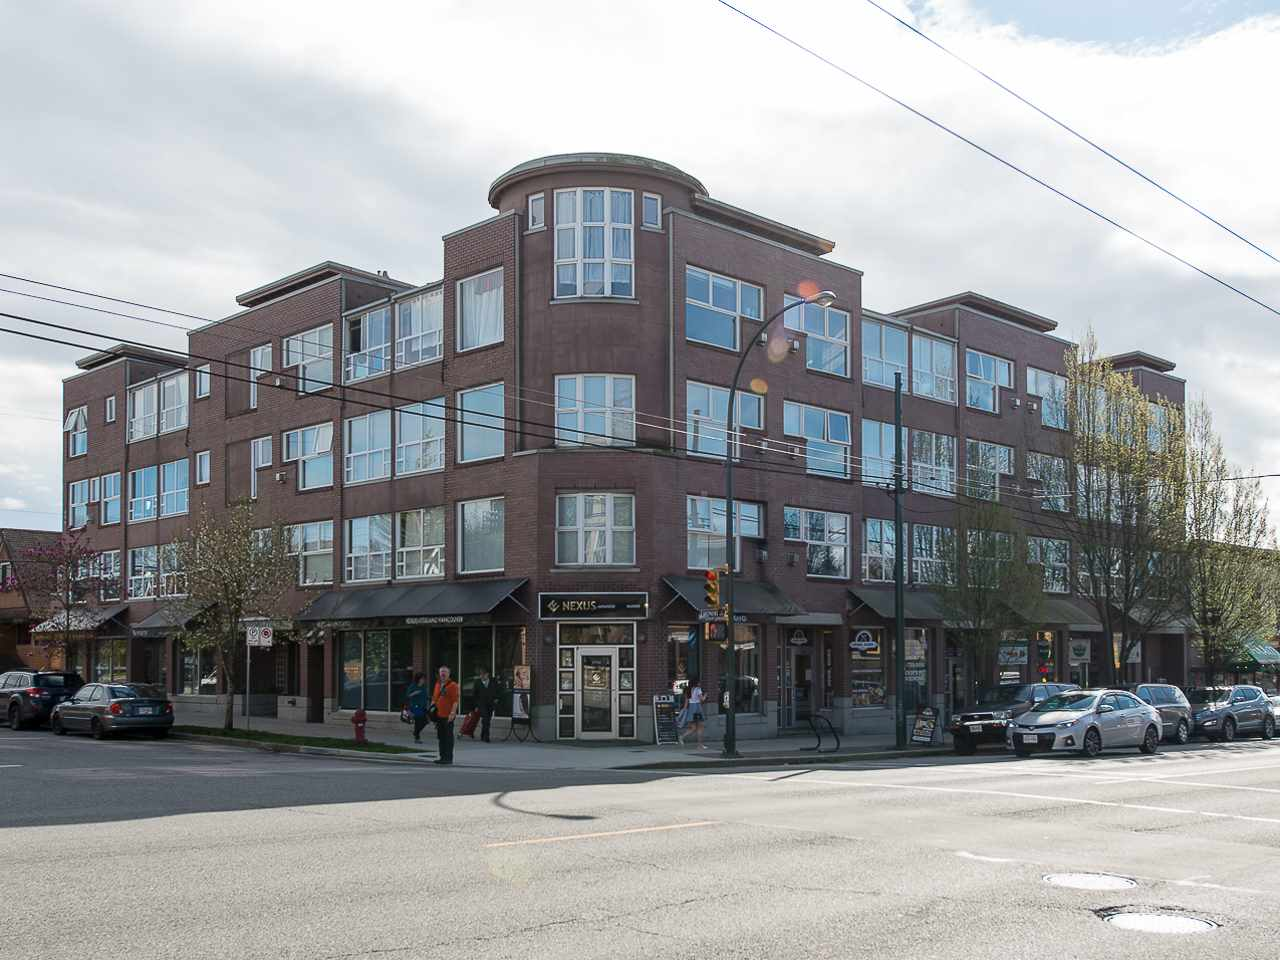 Photo 17: 304 2025 STEPHENS STREET in Vancouver: Kitsilano Condo for sale (Vancouver West)  : MLS® # R2158946